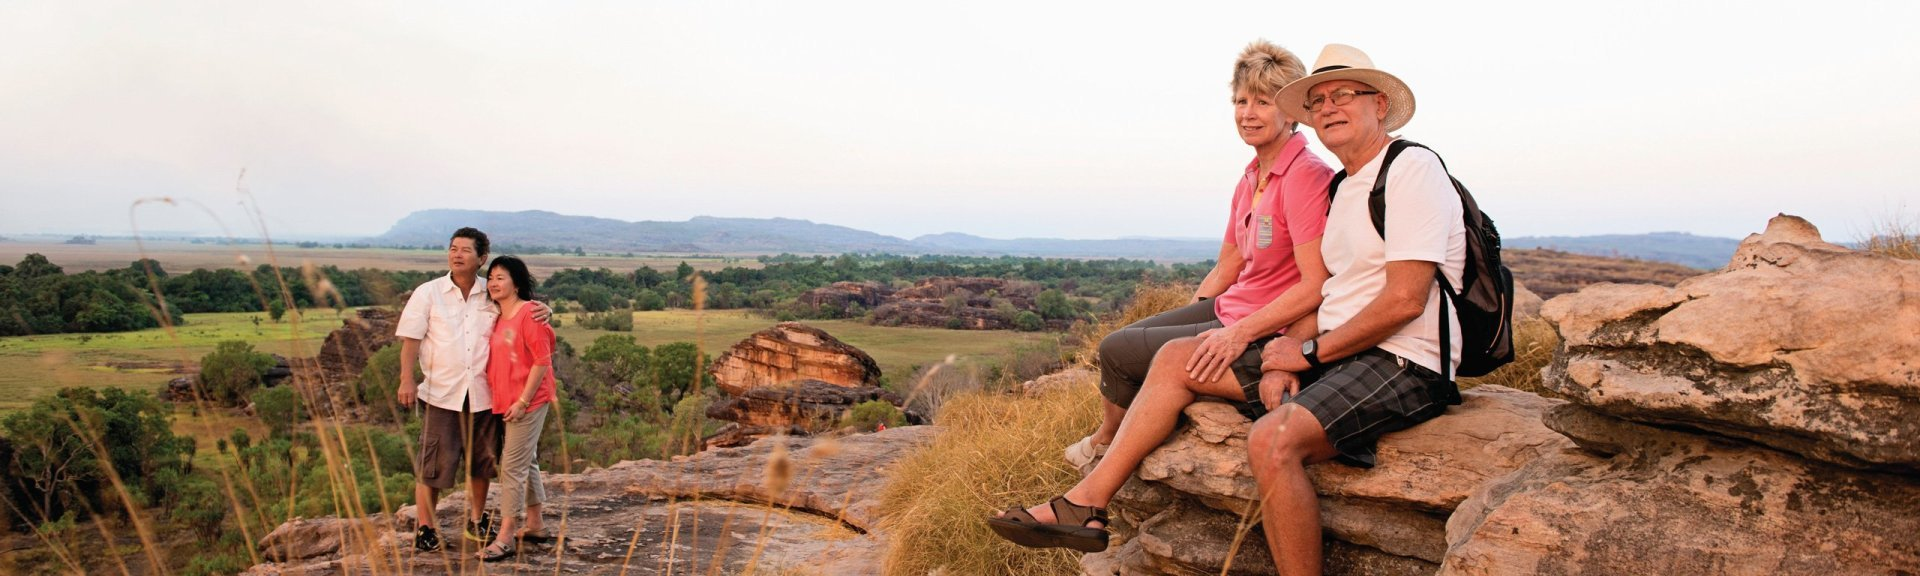 Find yourself in Kakadu